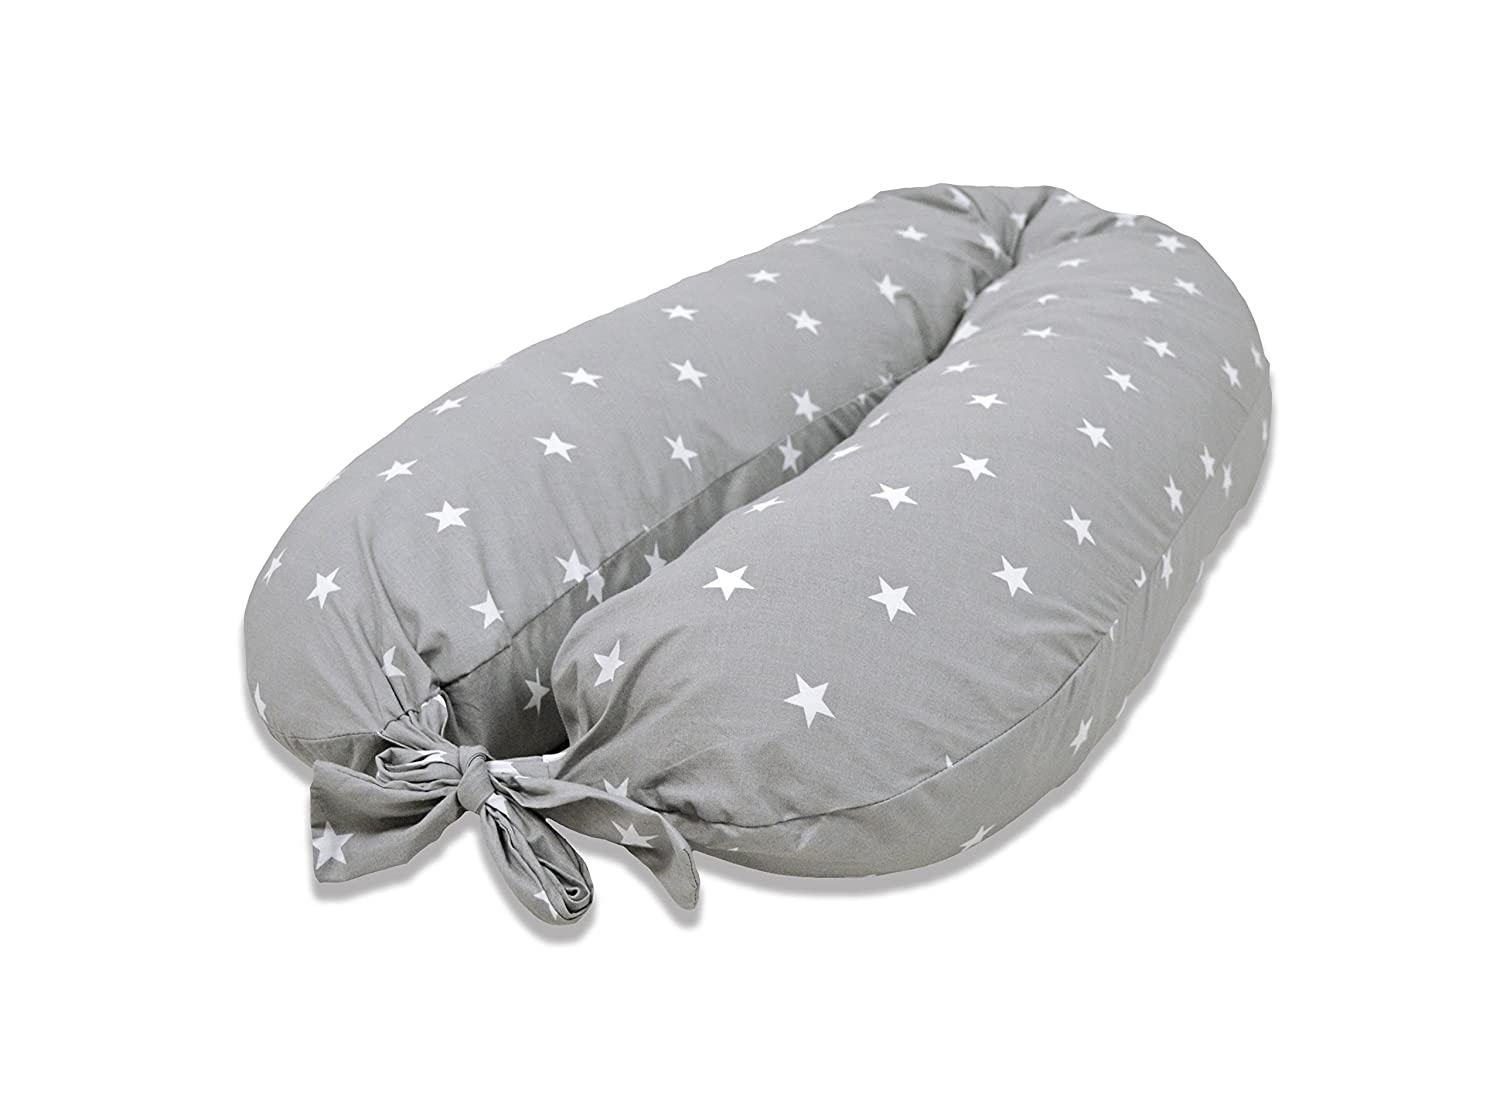 Cuddles Collection White Stars On Grey Maternity Pillow Cuddles Collection Ltd CCU11332